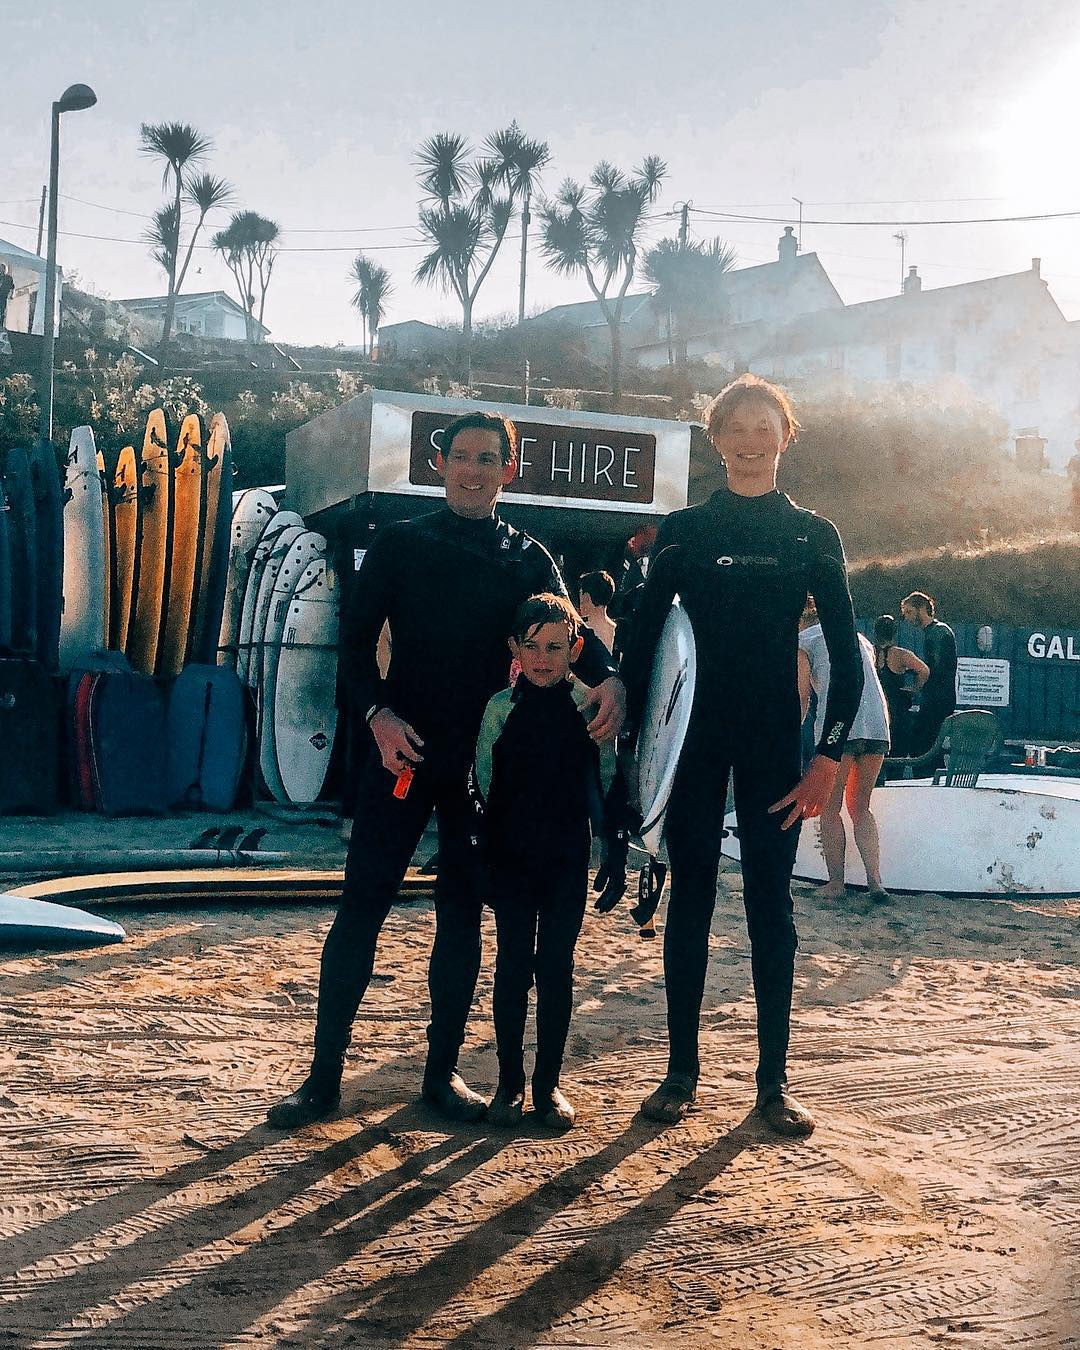 Been catching some great waves in Cornwall this week! Was a little humbling surfing with my cousin @barnabycox_ , who is the under 18 British surf champion! So rad watching my son learning the ropes and getting stoked on surfing too. Happy Easter all! #cornwall #surfing